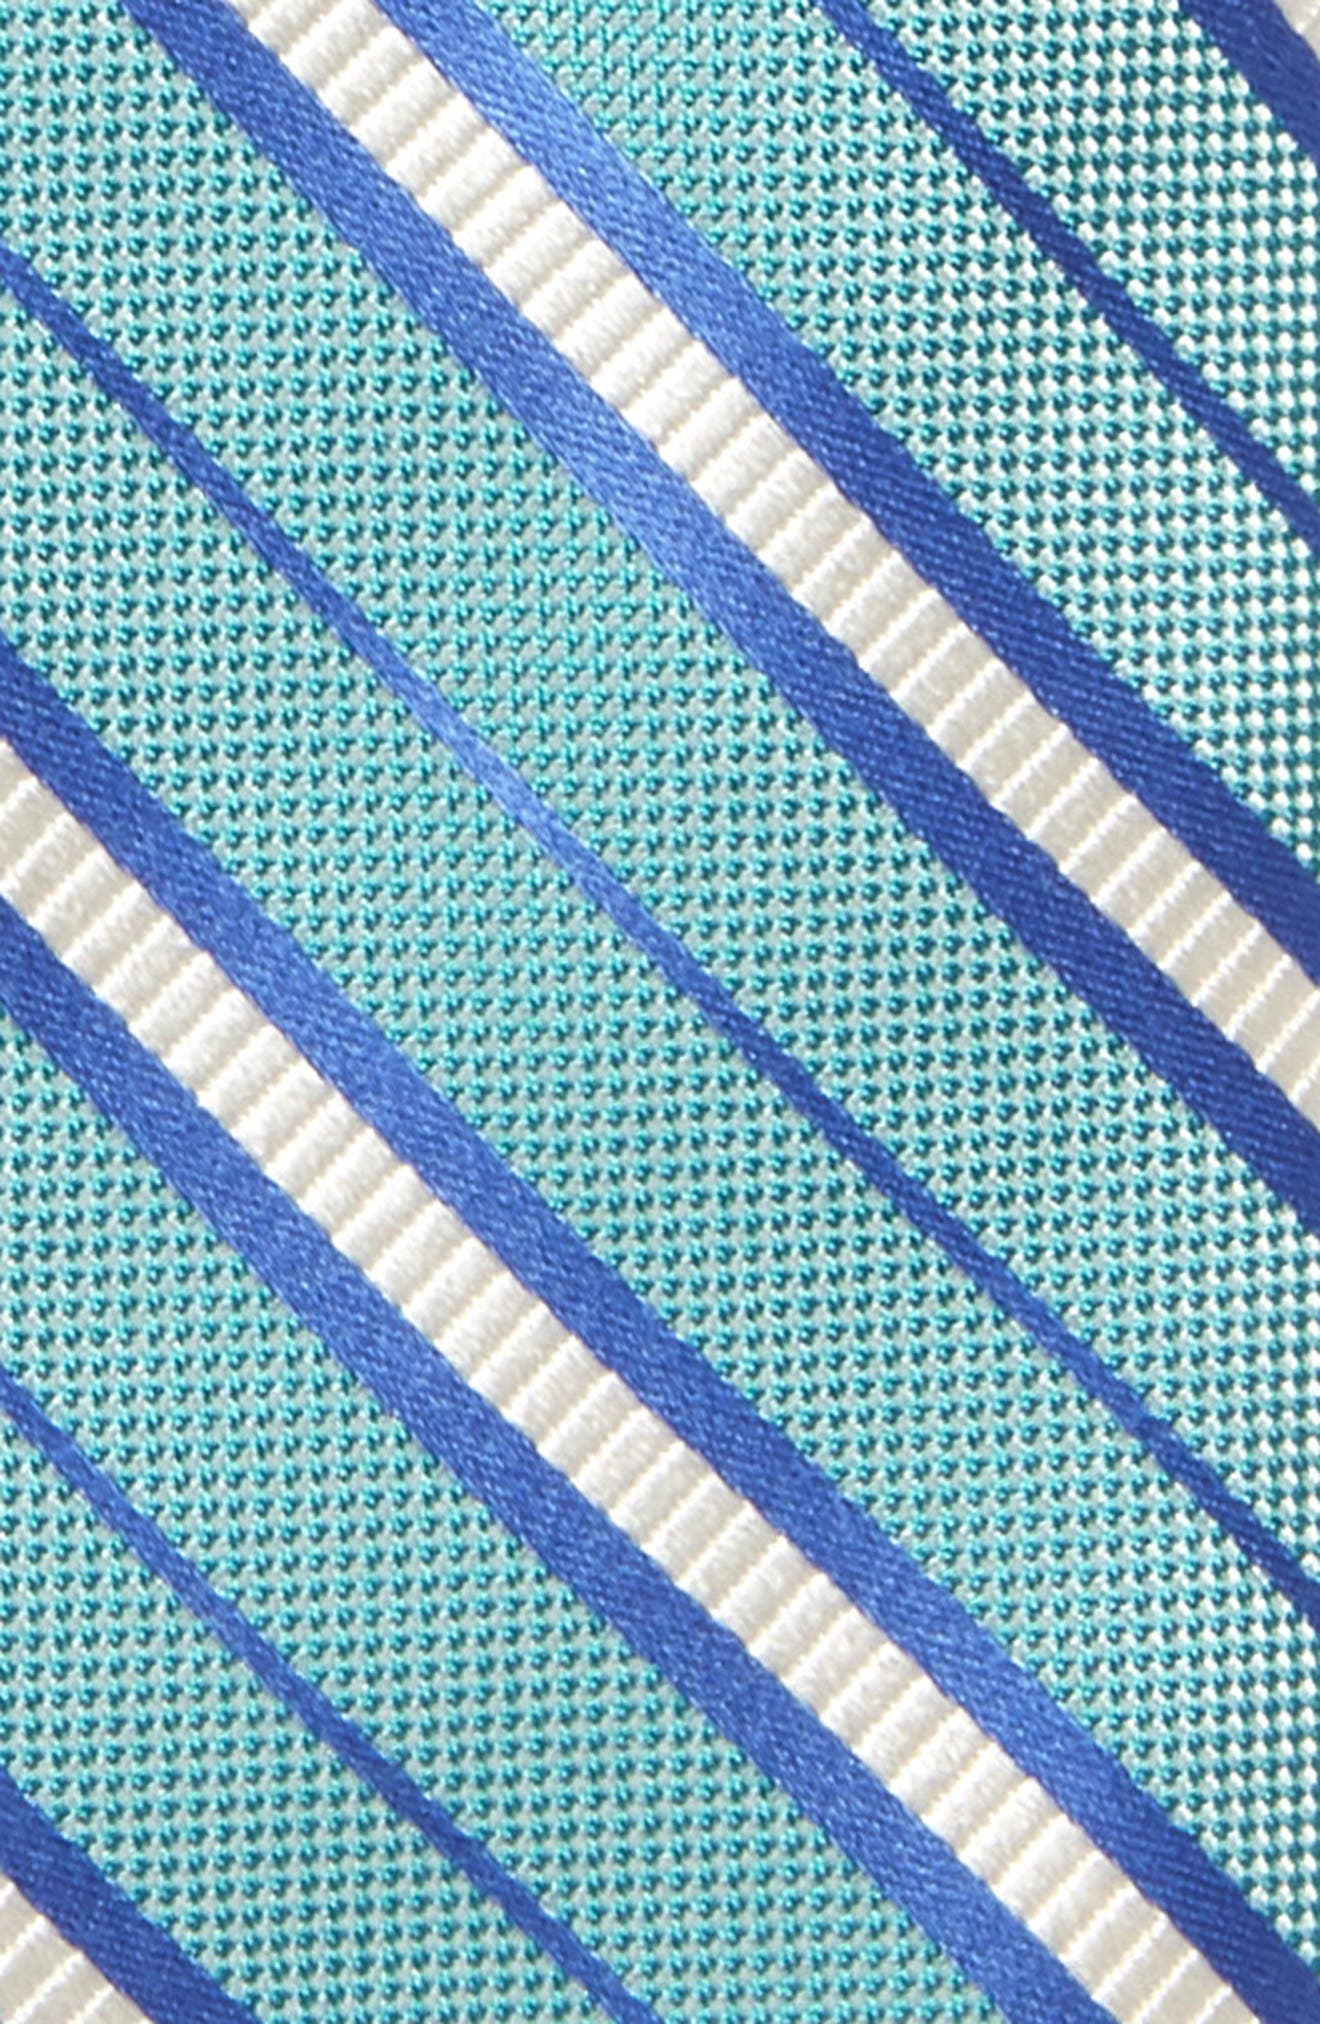 Candy Stripe Silk Tie,                             Alternate thumbnail 2, color,                             445